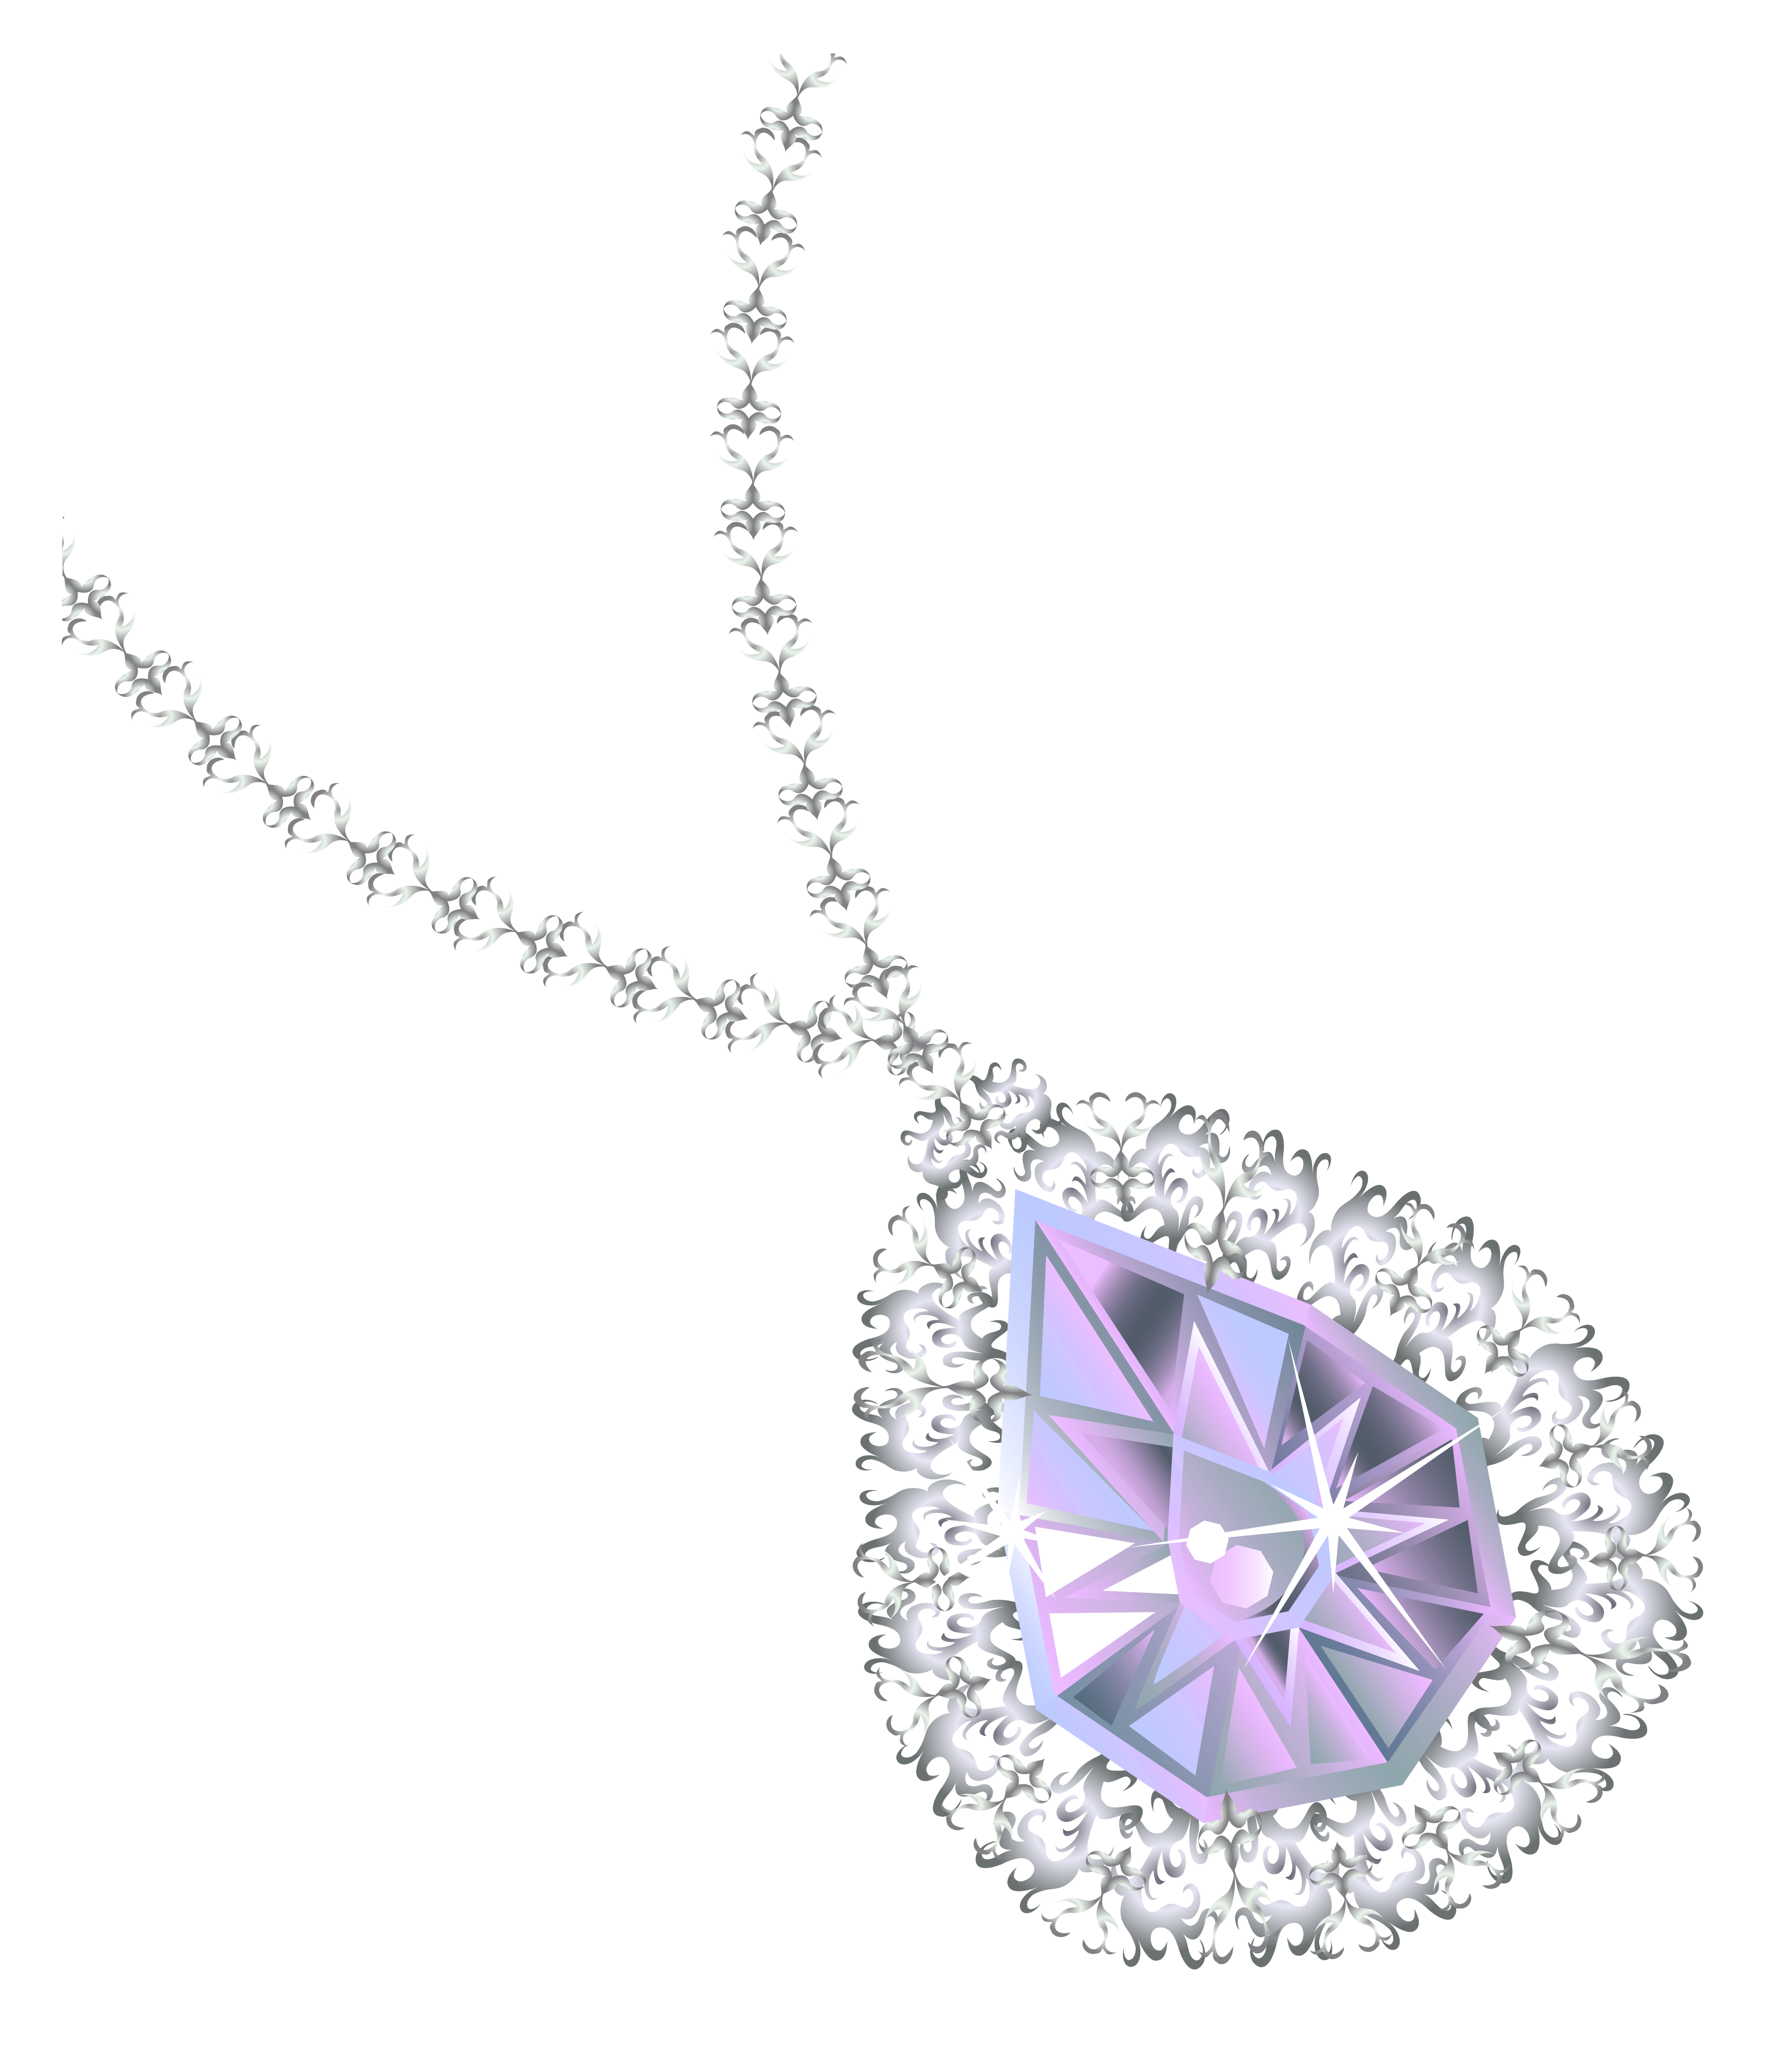 Necklace clipart. Diamond png picture gallery